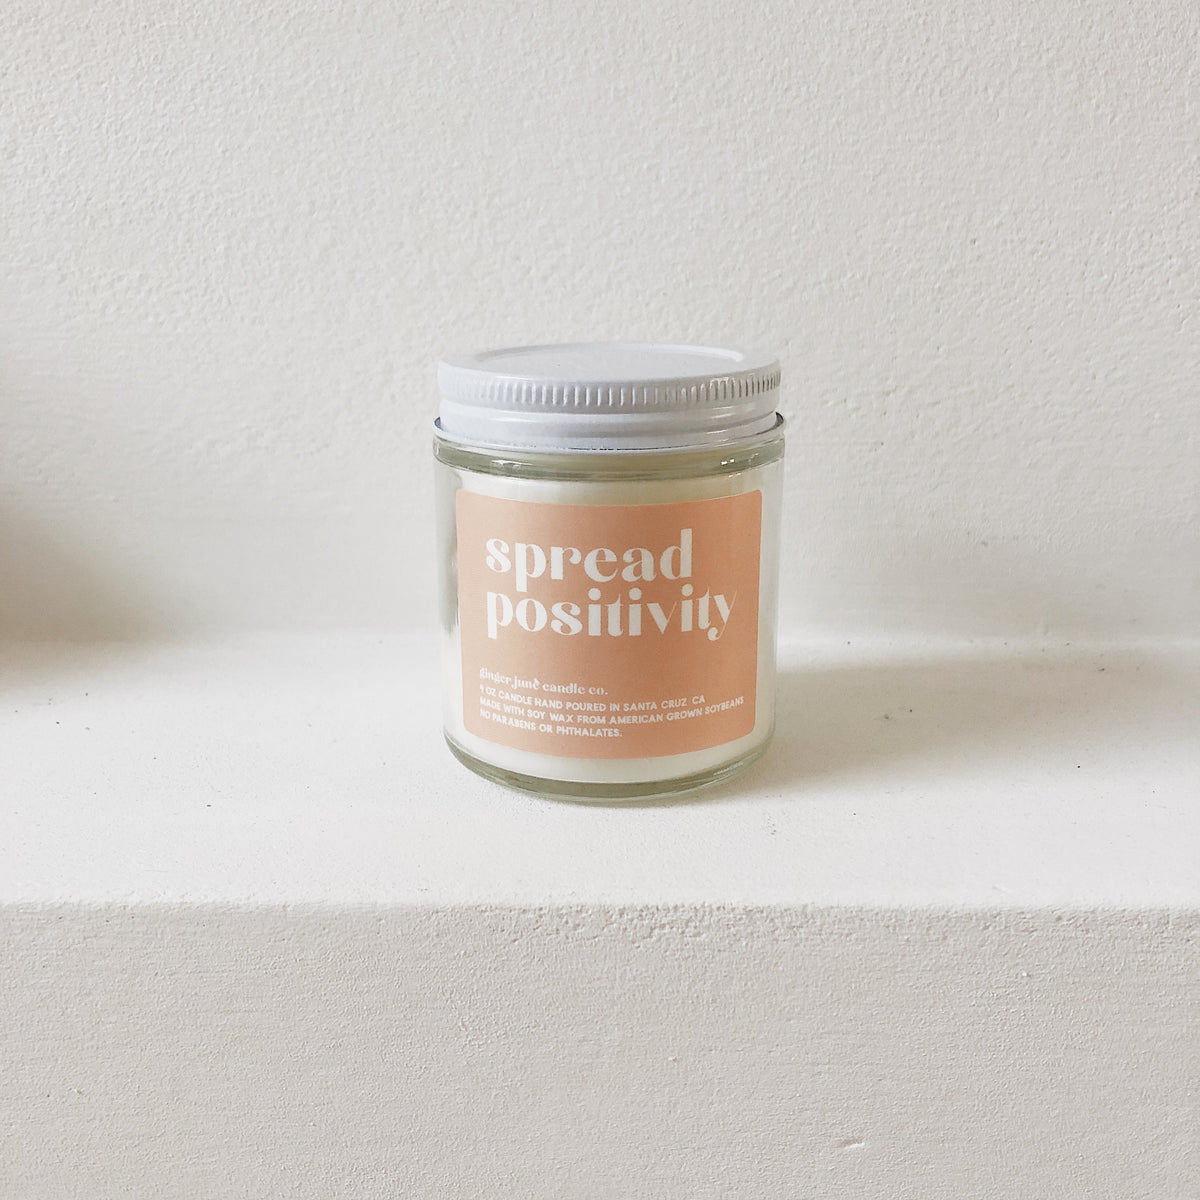 'Spread Positivity' Vegan Soy Candle